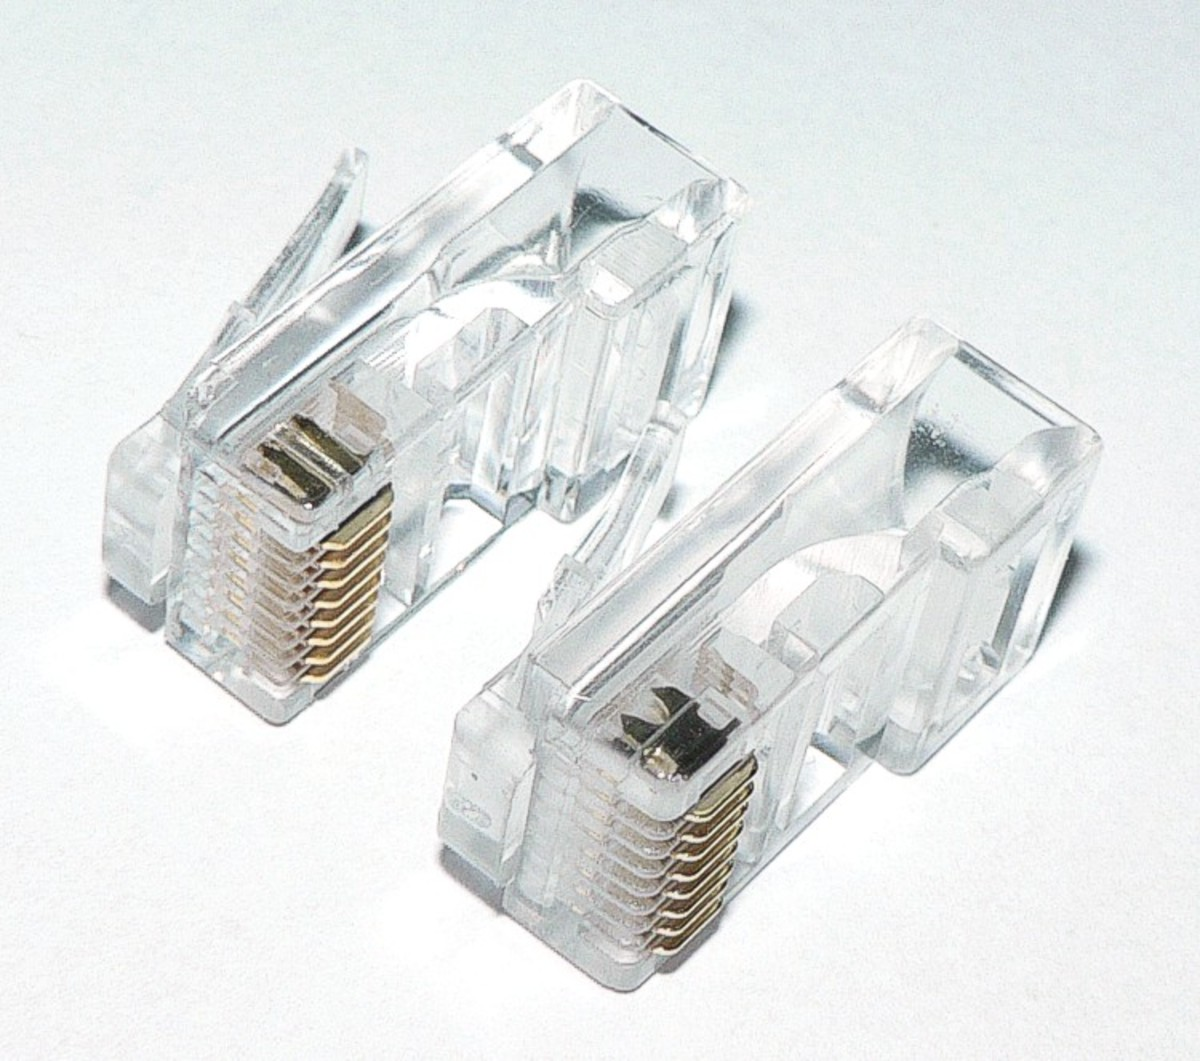 Two RJ45 connectors used with the UTP cable